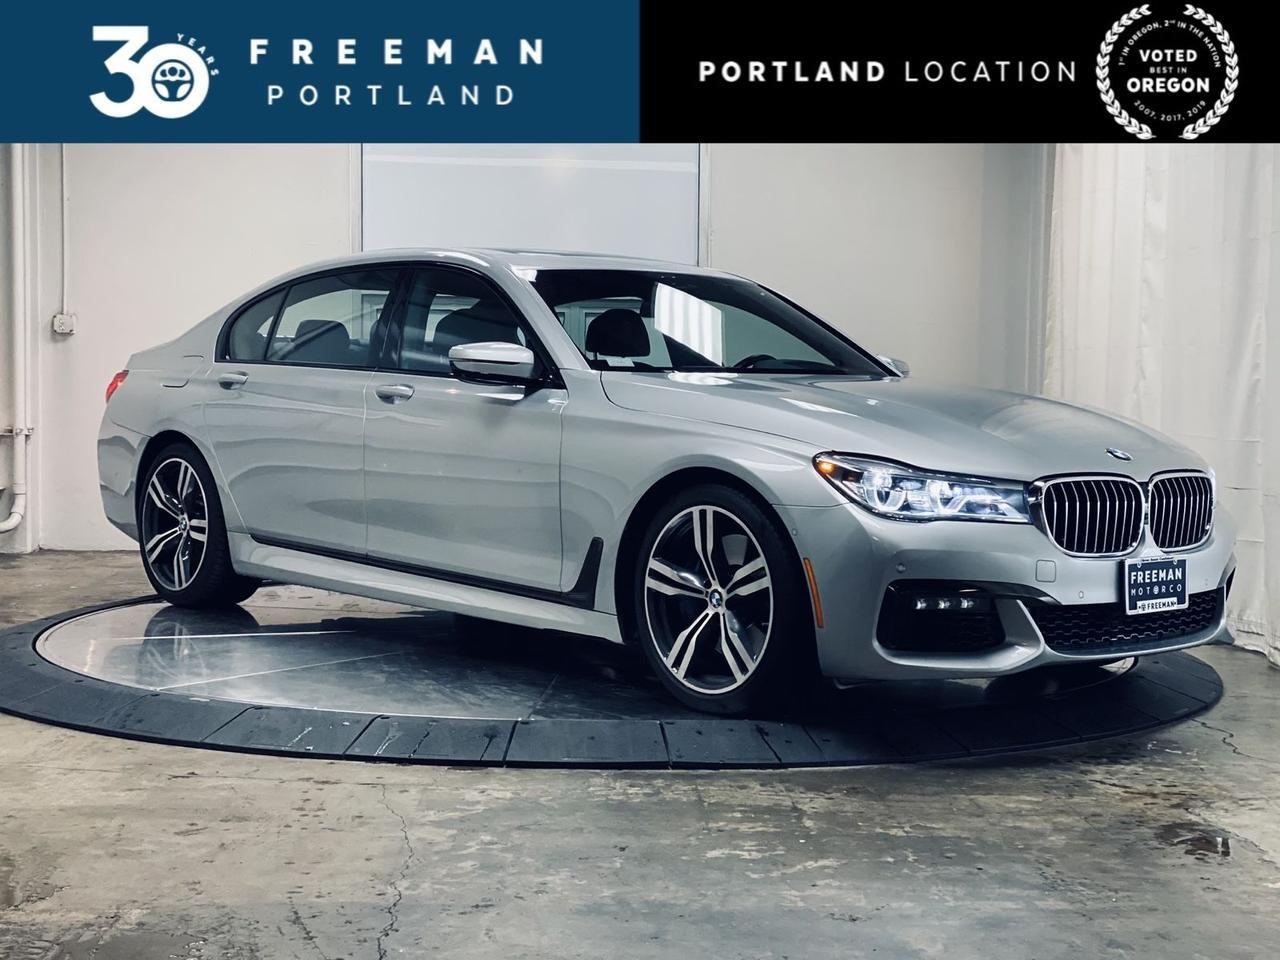 2017 BMW 750i M Sport Driving Assistance Pkg Remote Controlled Parking Portland OR